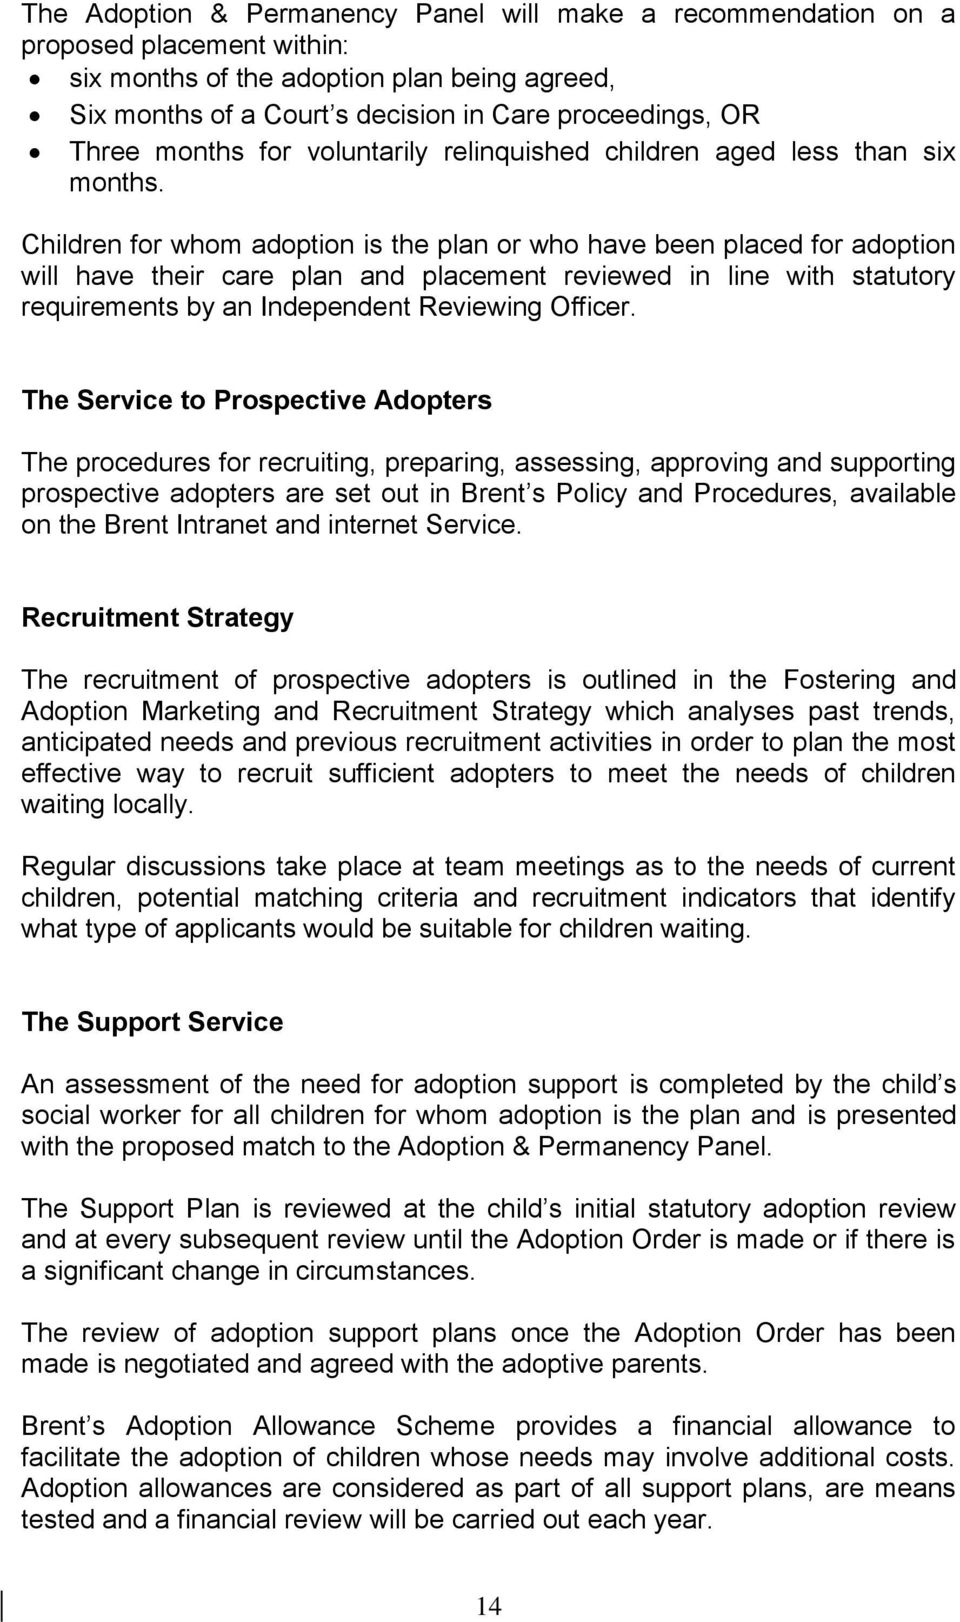 Children for whom adoption is the plan or who have been placed for adoption will have their care plan and placement reviewed in line with statutory requirements by an Independent Reviewing Officer.